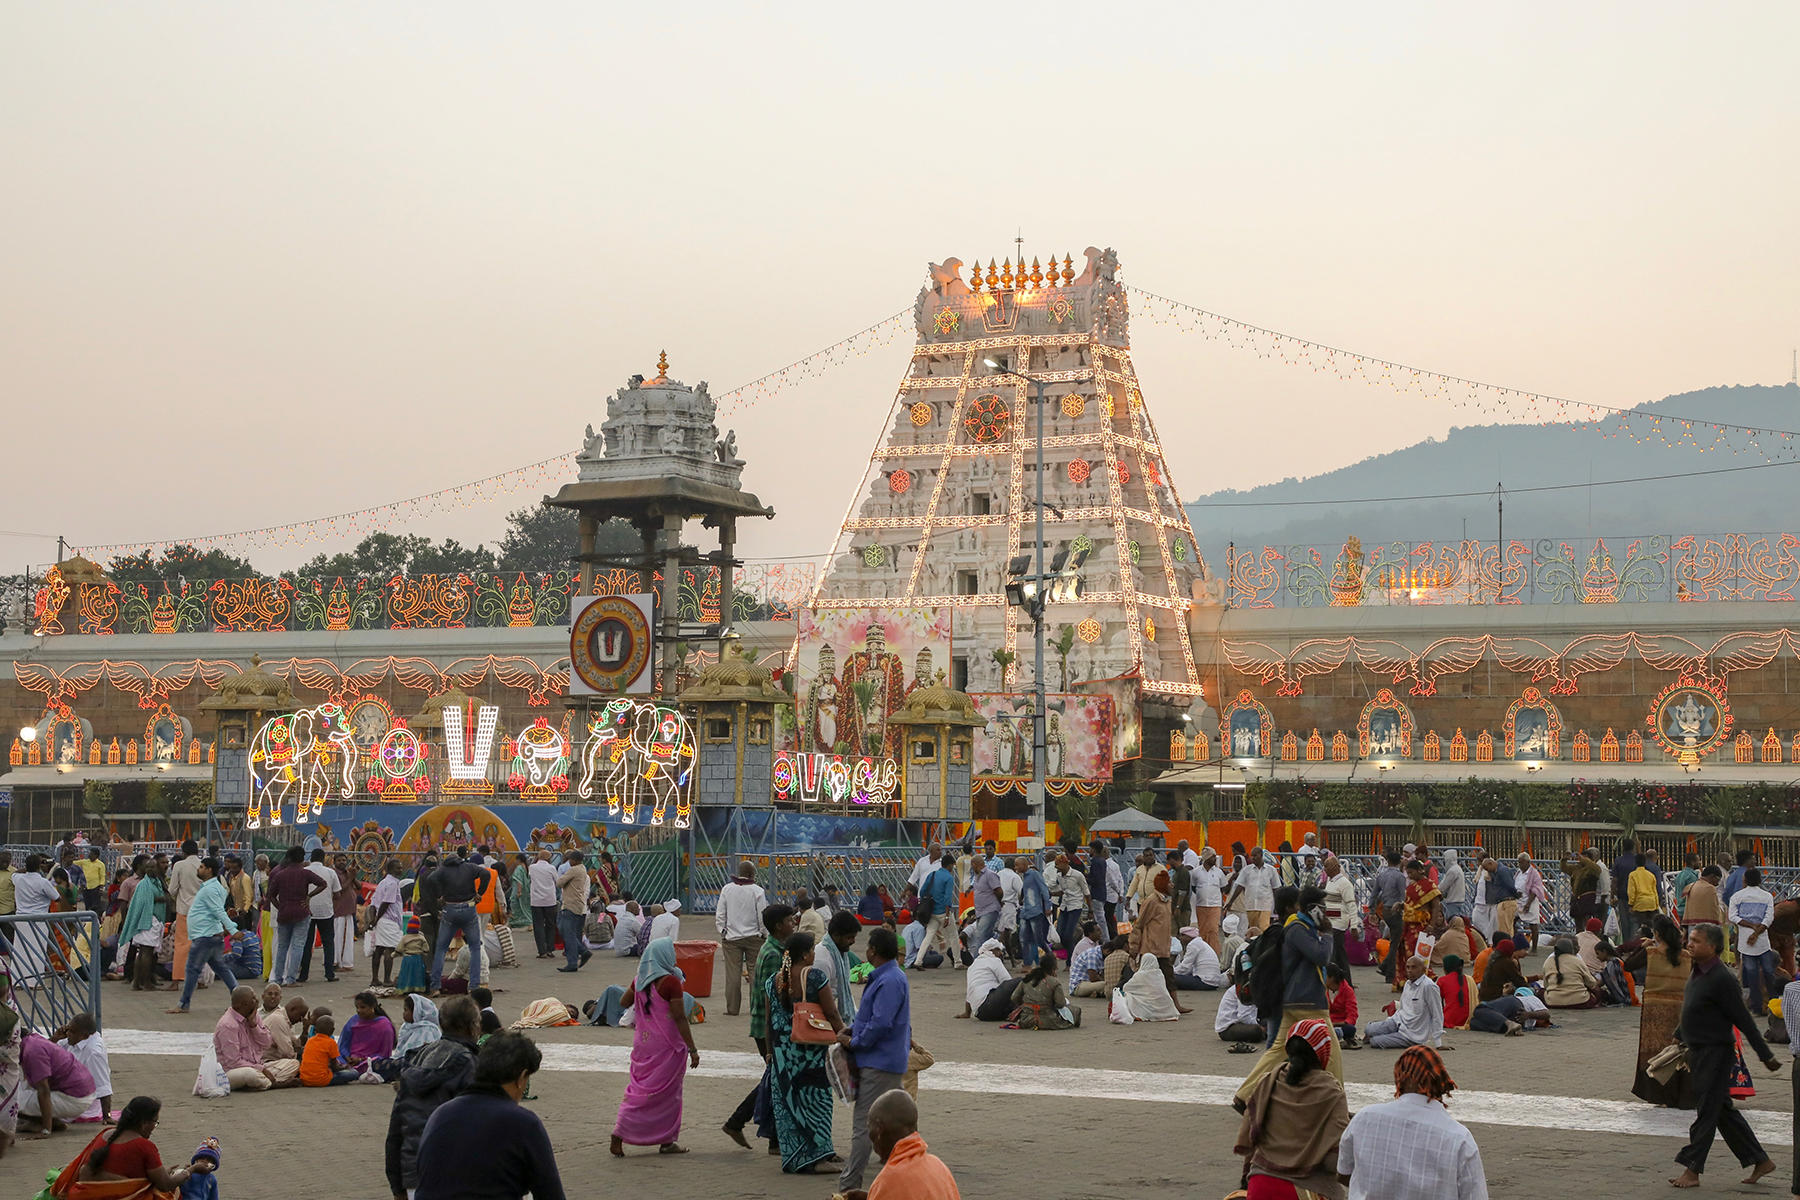 hyderabad: Tirupati Balaji temple decked up for New Year celebrations